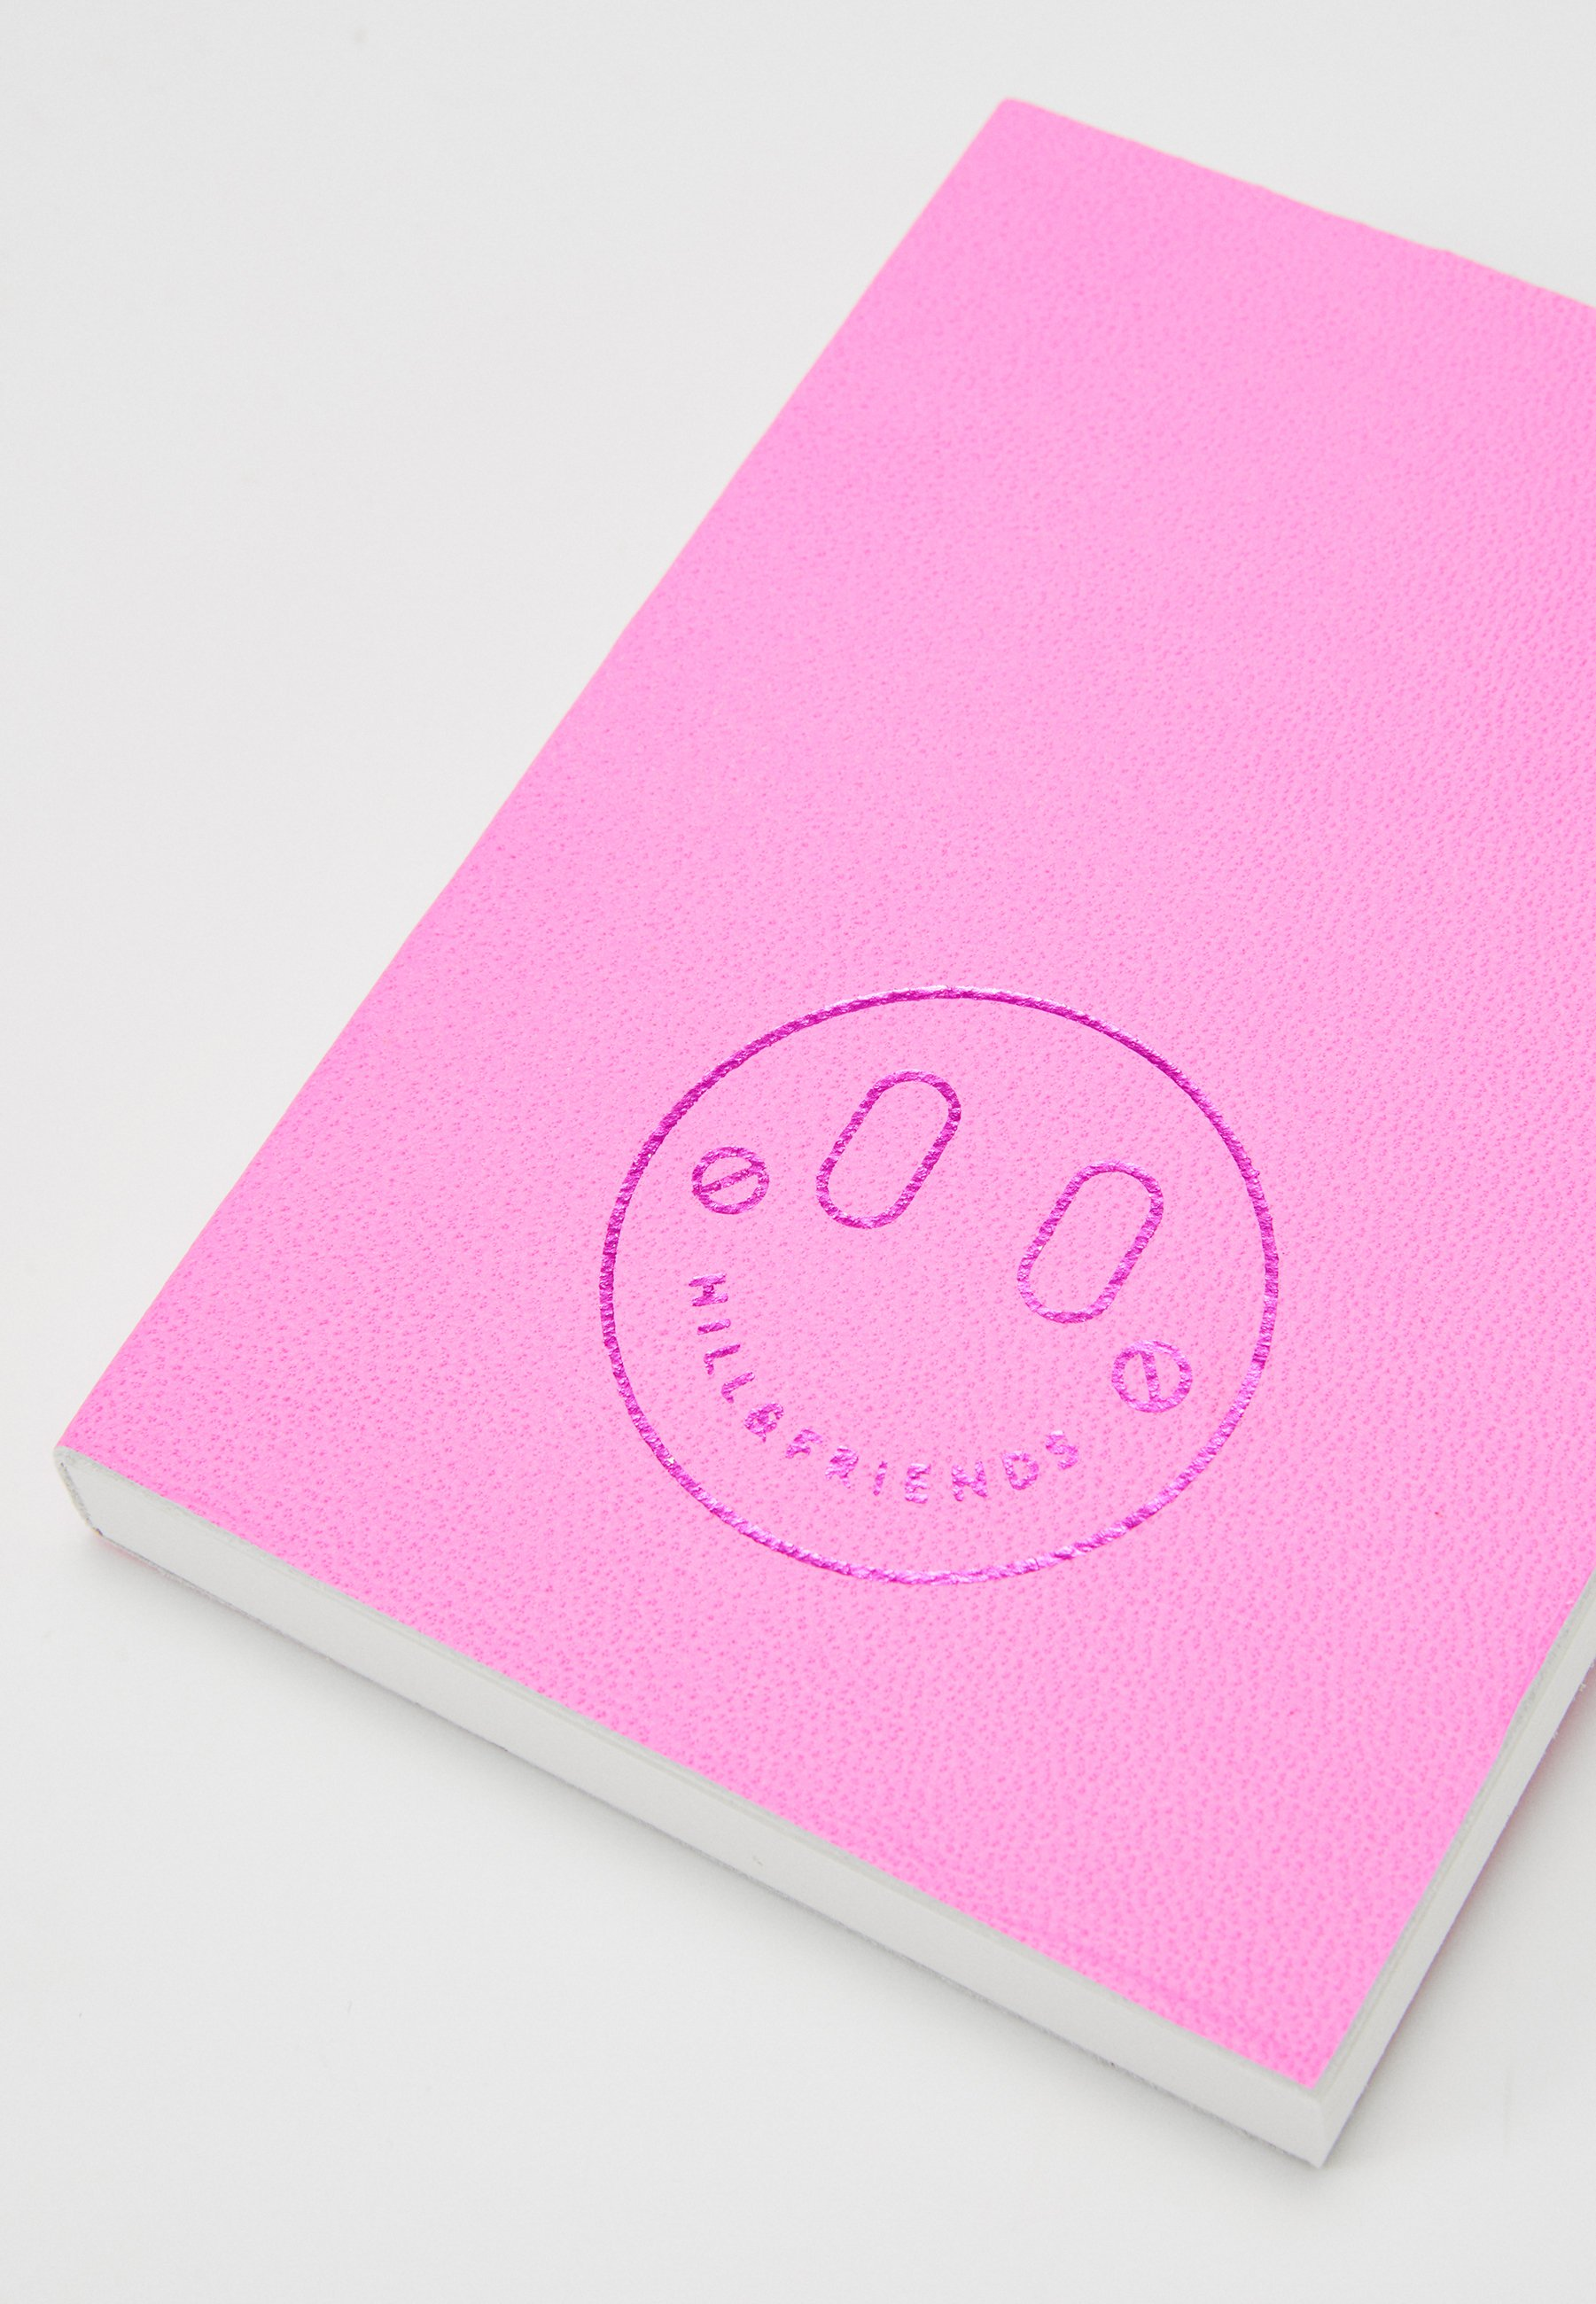 Hill & Friends SMALL NOTEBOOK BOXED - Annet - pink/rosa 4g0dzv874Hj4pkP